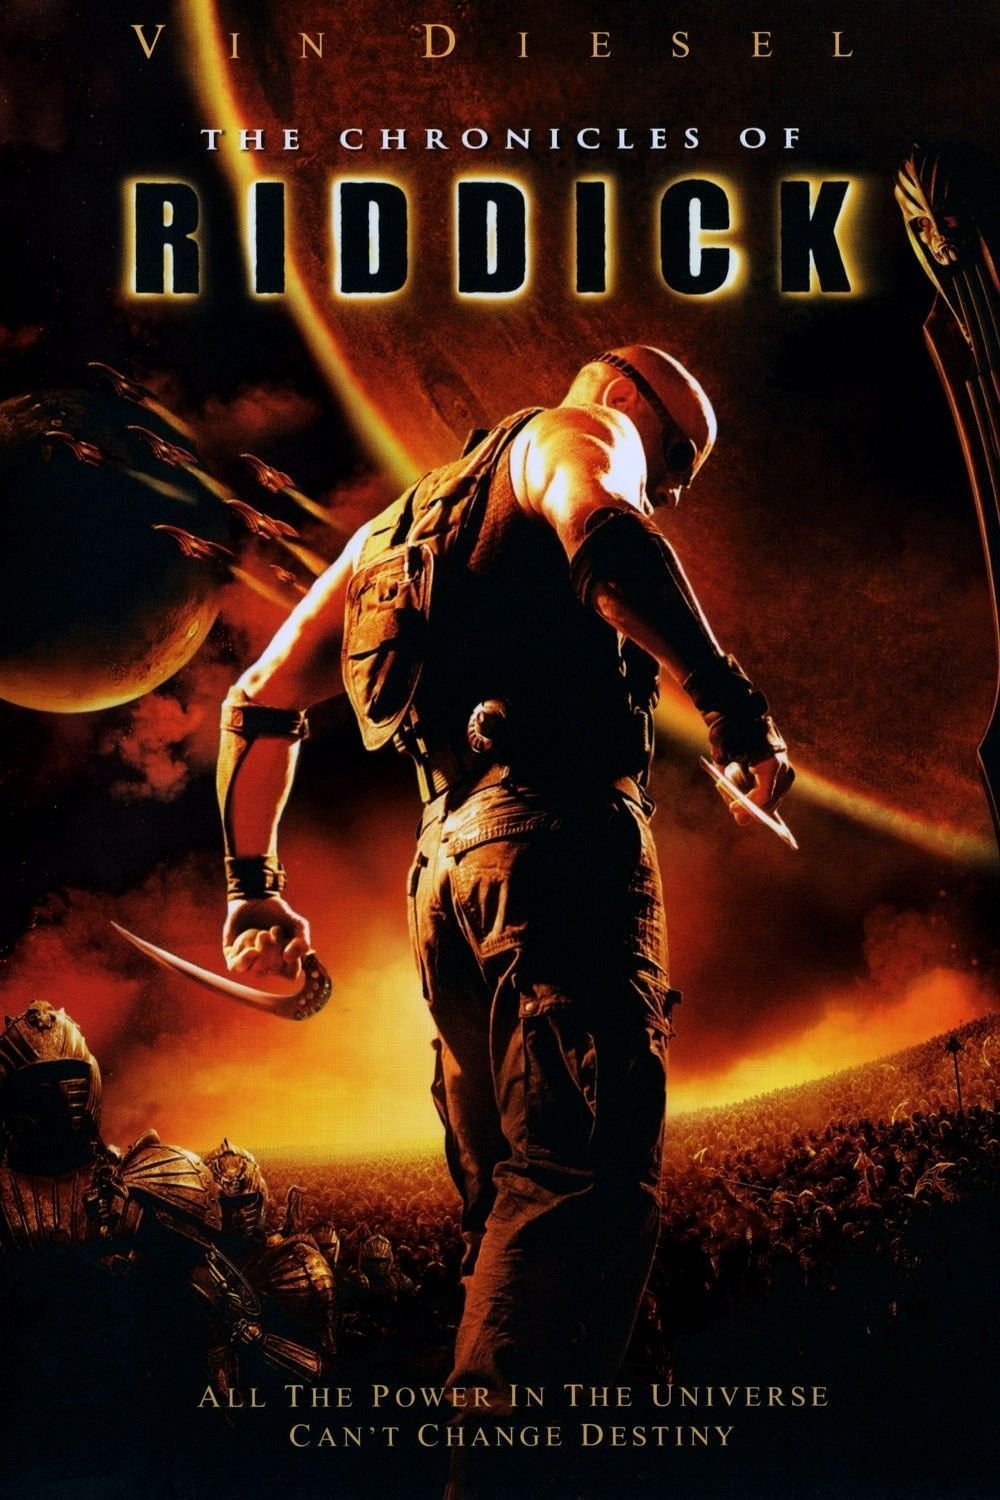 2136 The Chronicles Of Riddick 2004 720p Brrip The Chronicles Of Riddick Best Movie Posters Film Movie